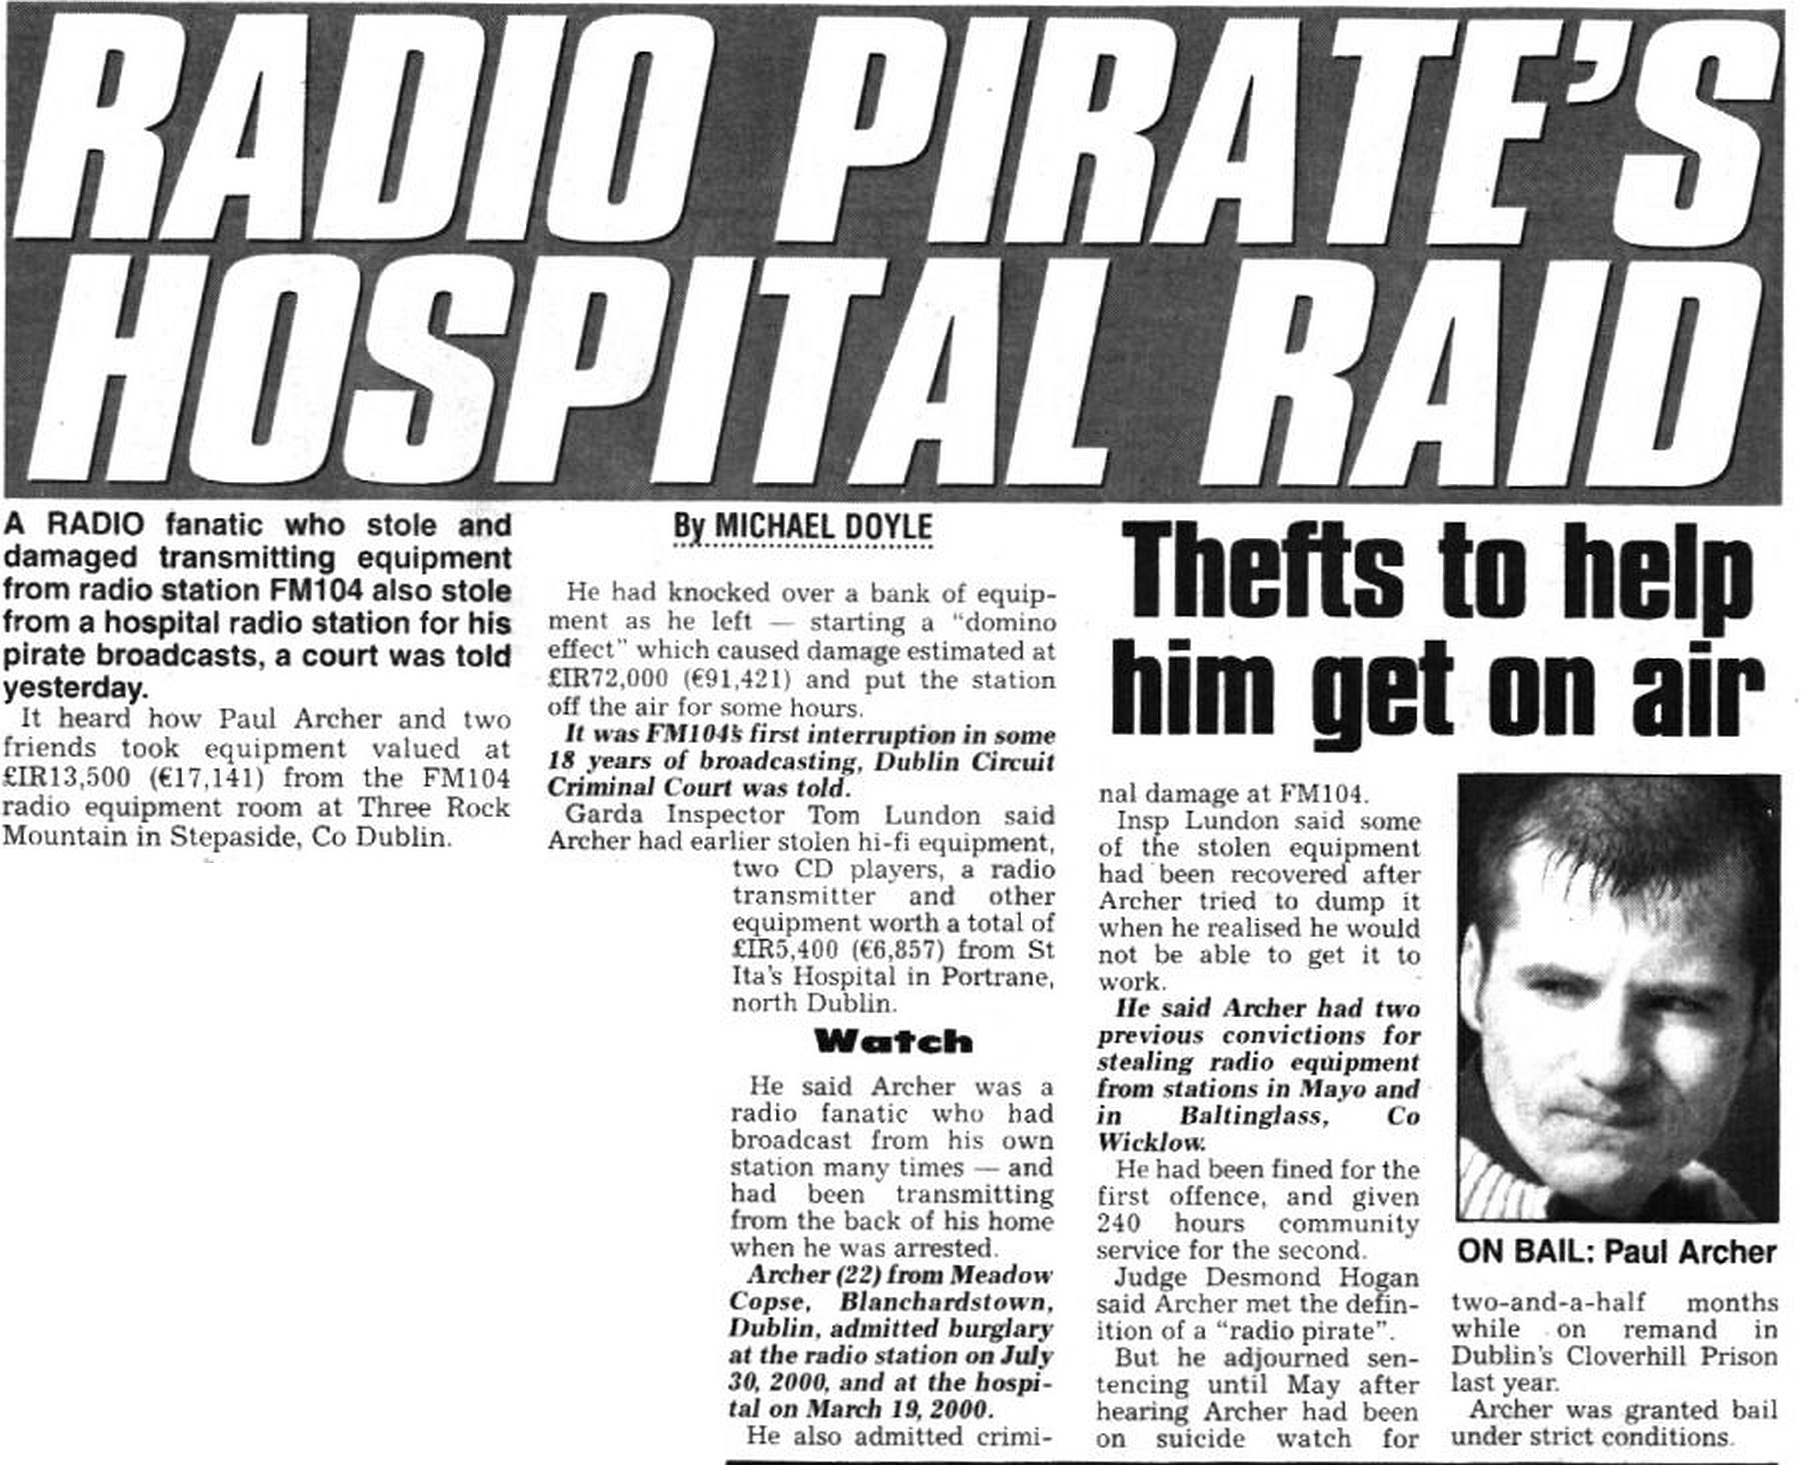 The Star - Radio pirate's hospital raid